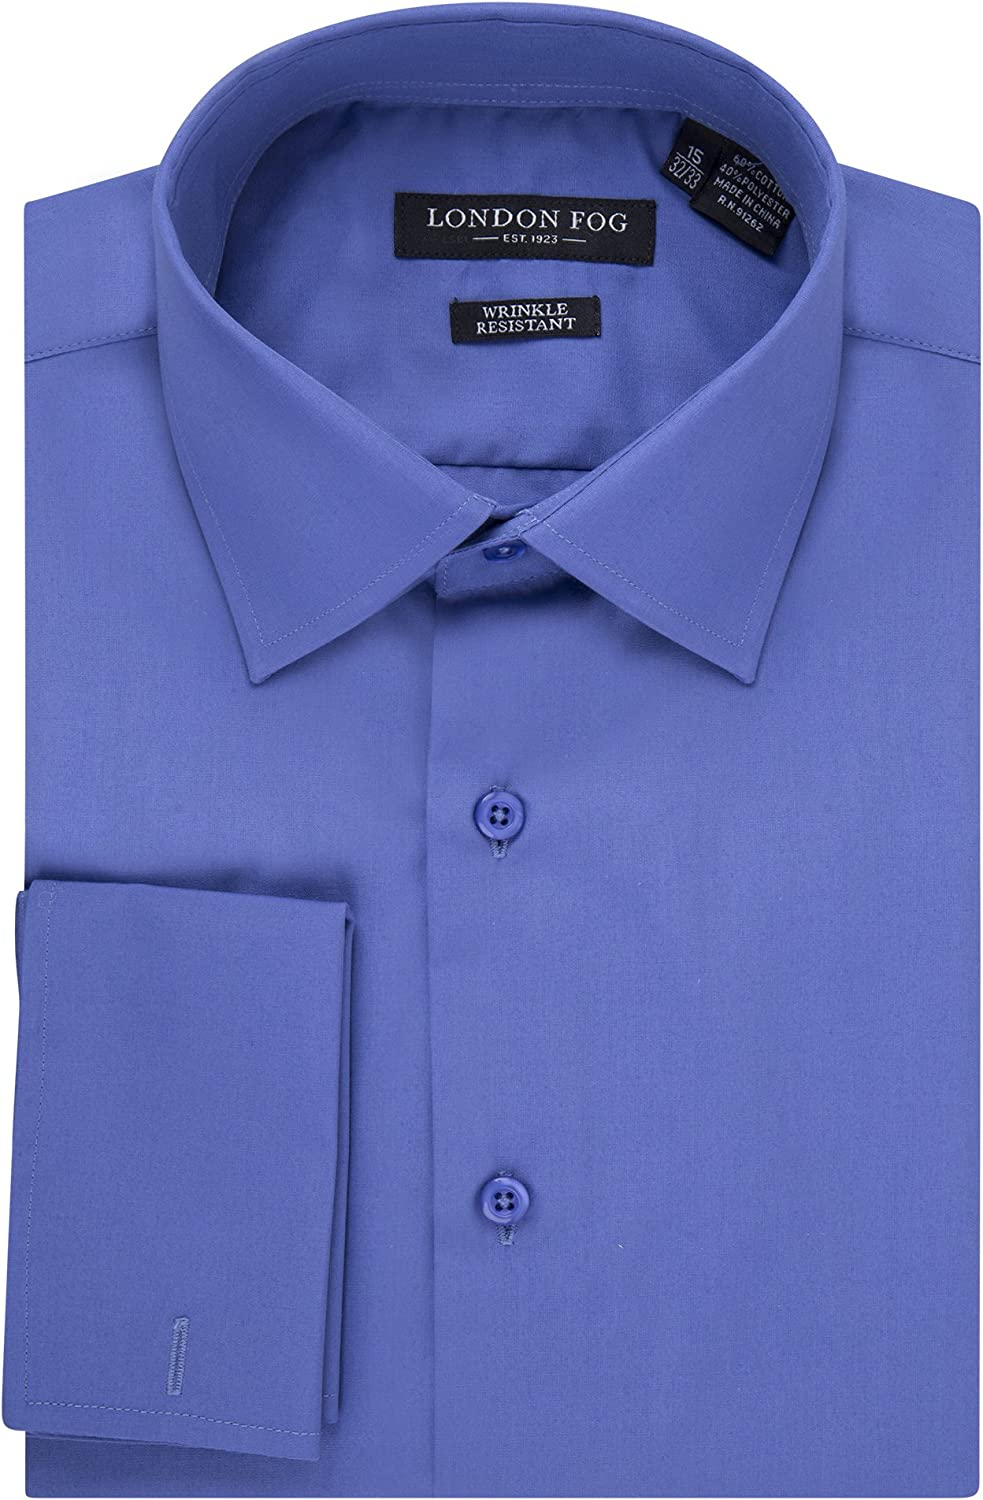 London Fog Men's Slim Fit Spread Collar French Cuff Solid Dress Shirt - Colors